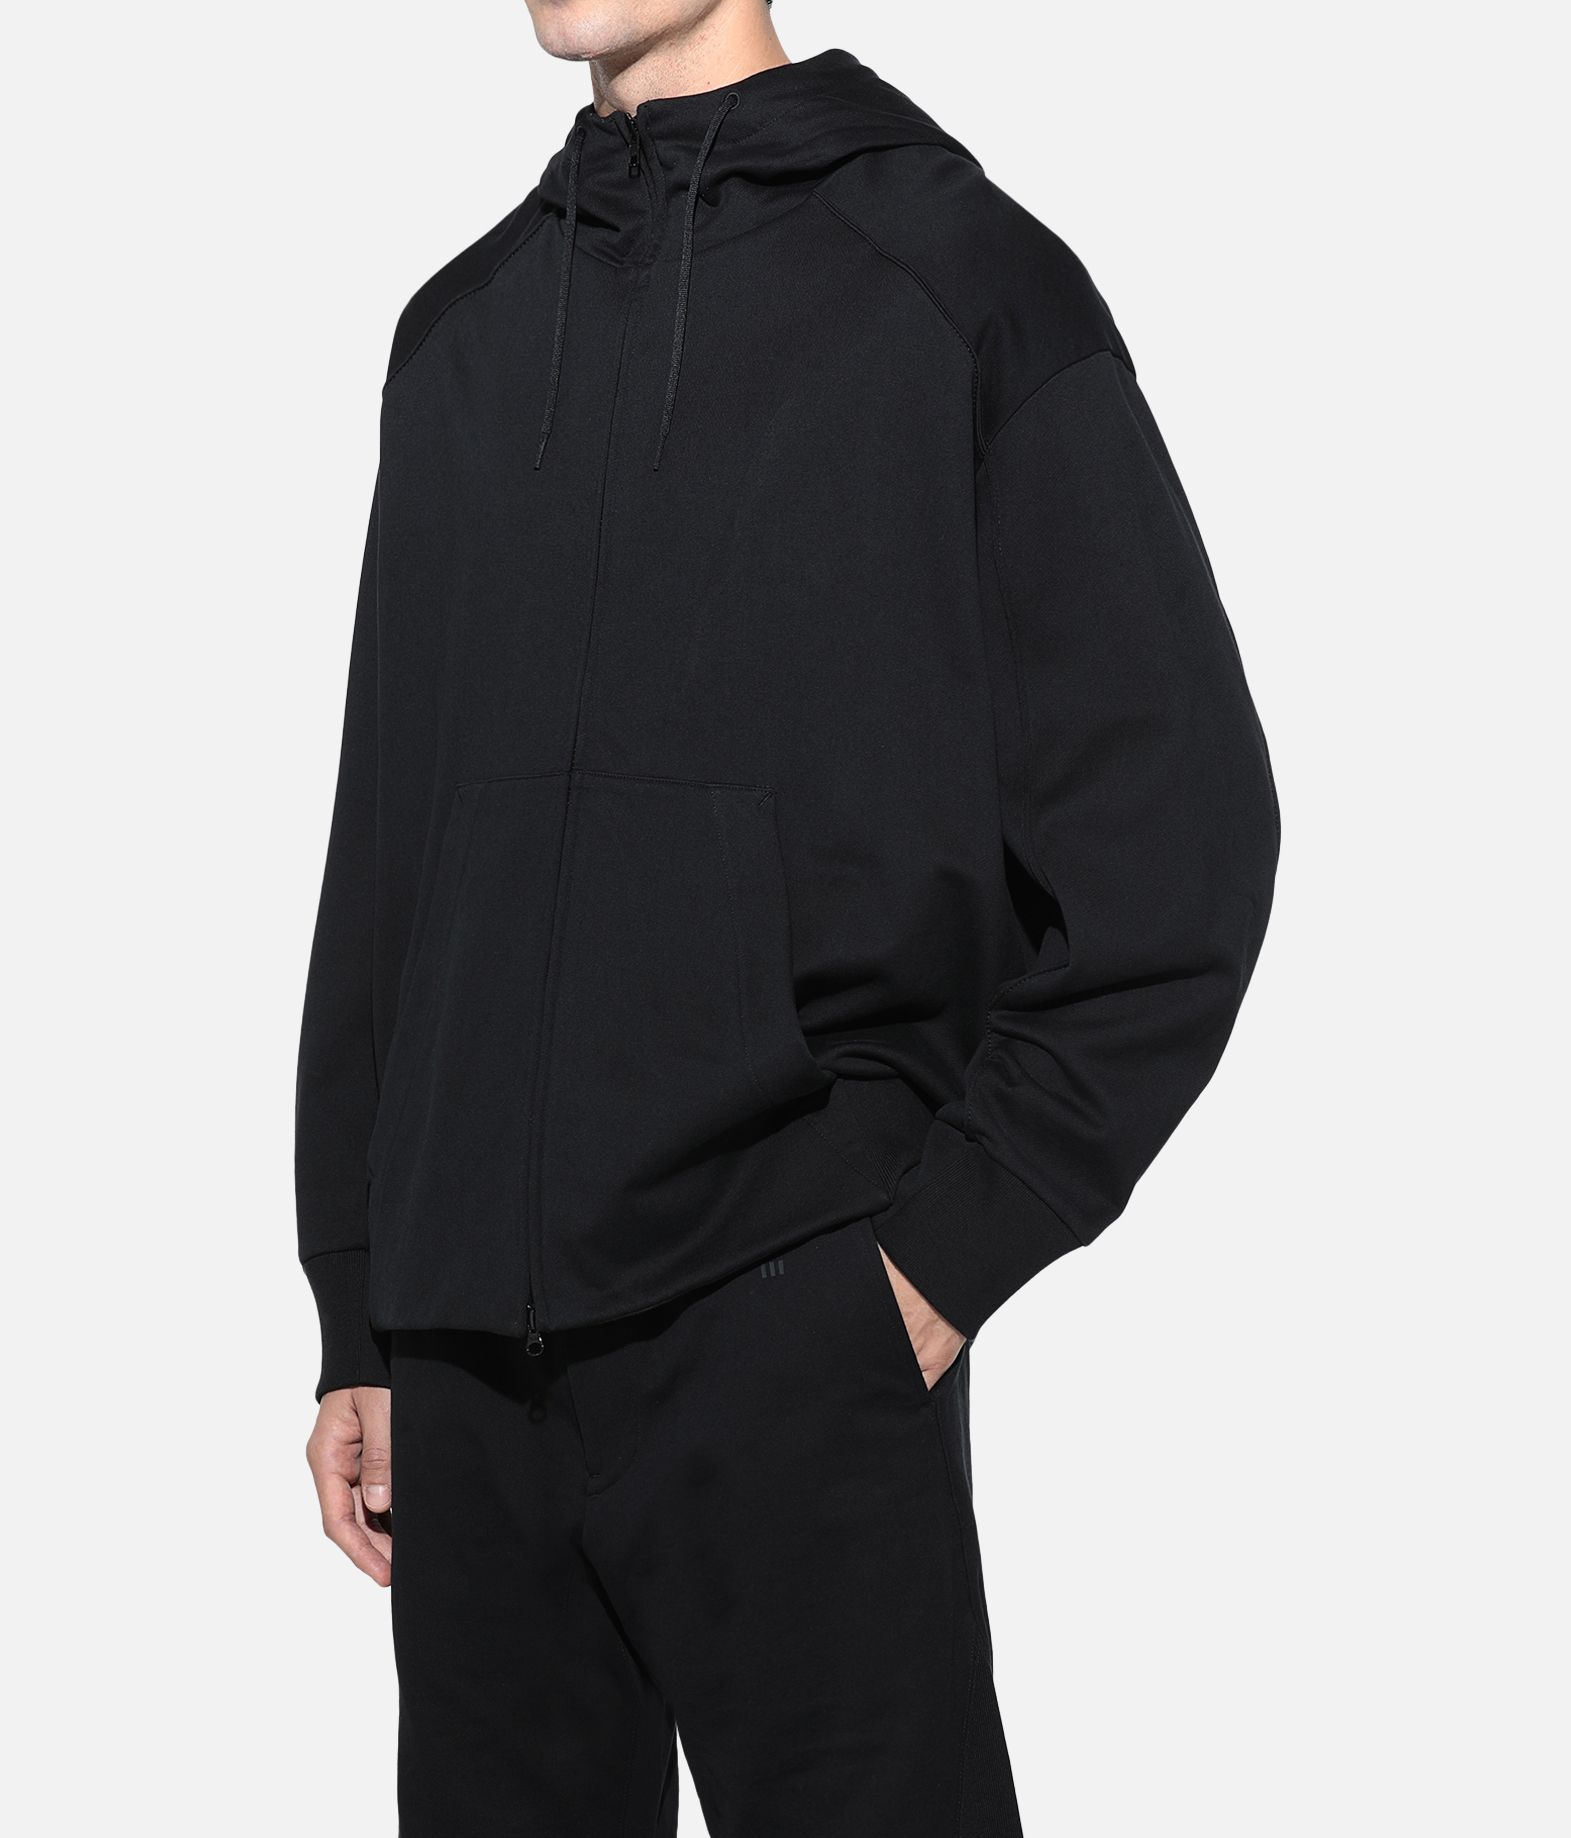 Y-3 Y-3 Signature Graphic Hoodie Hooded sweatshirt Man e